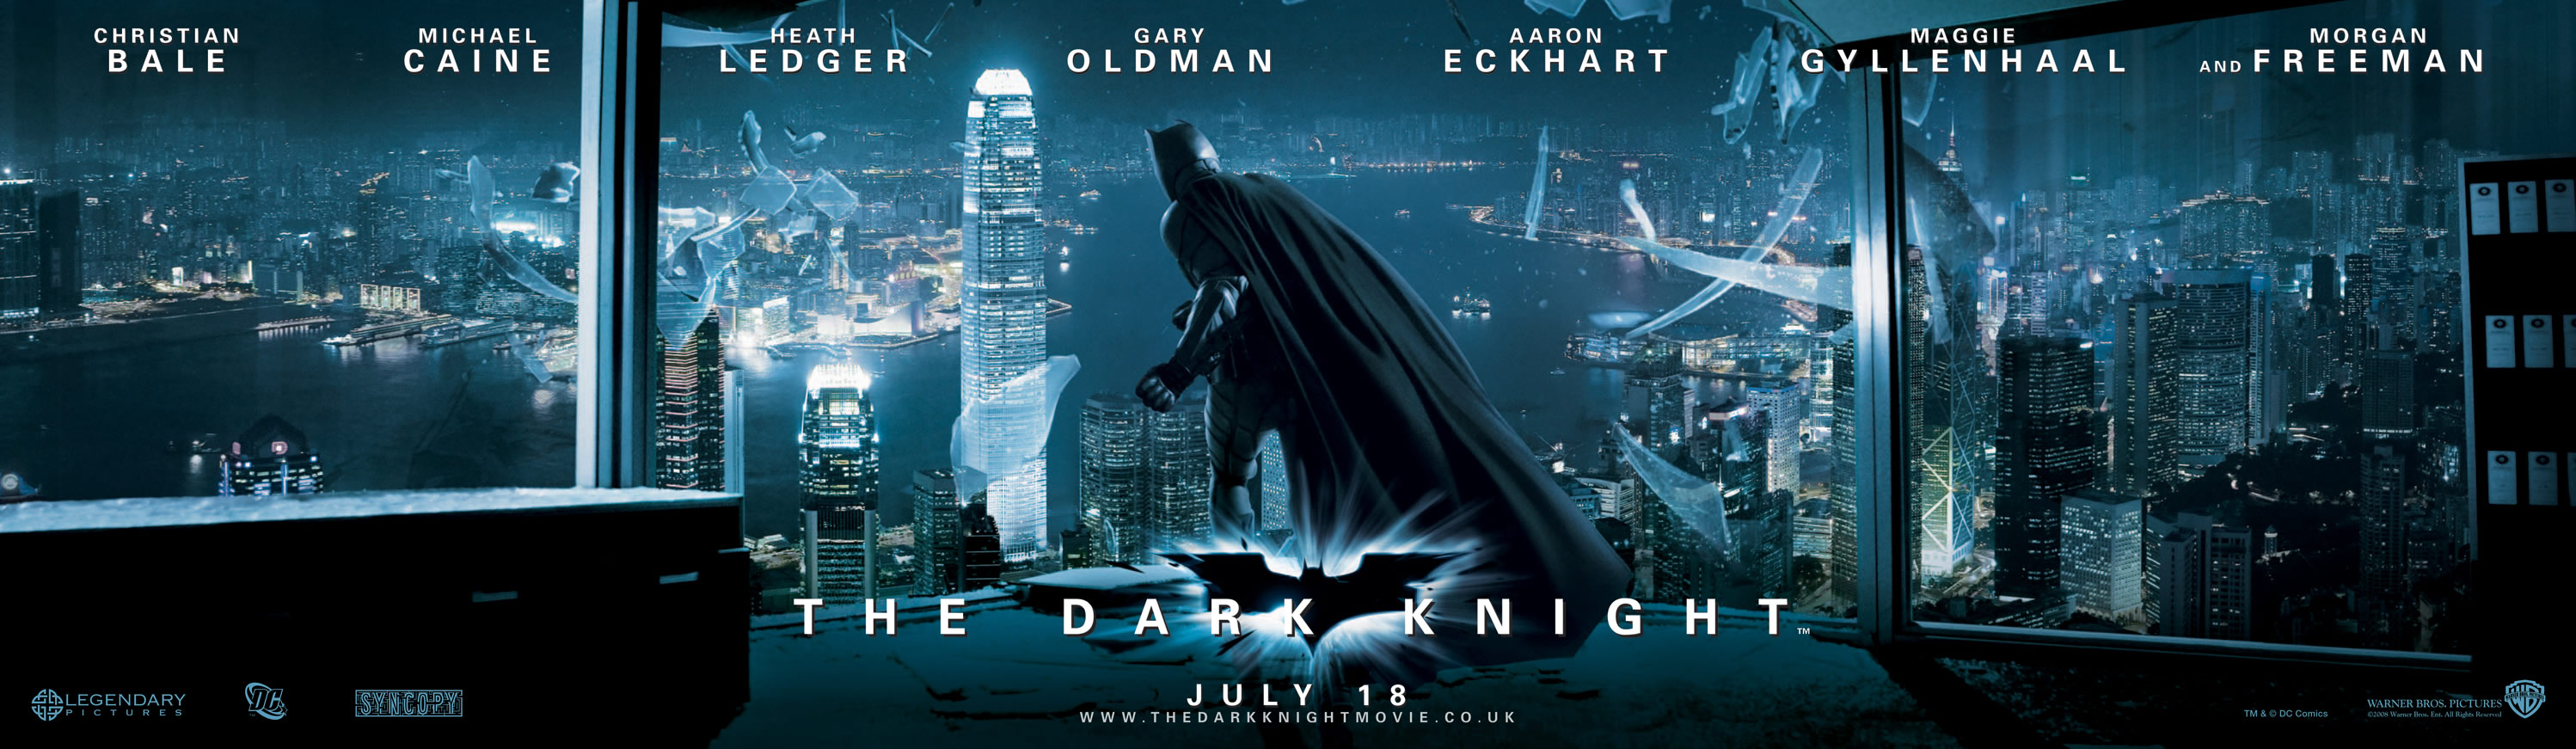 Another TDK poster!